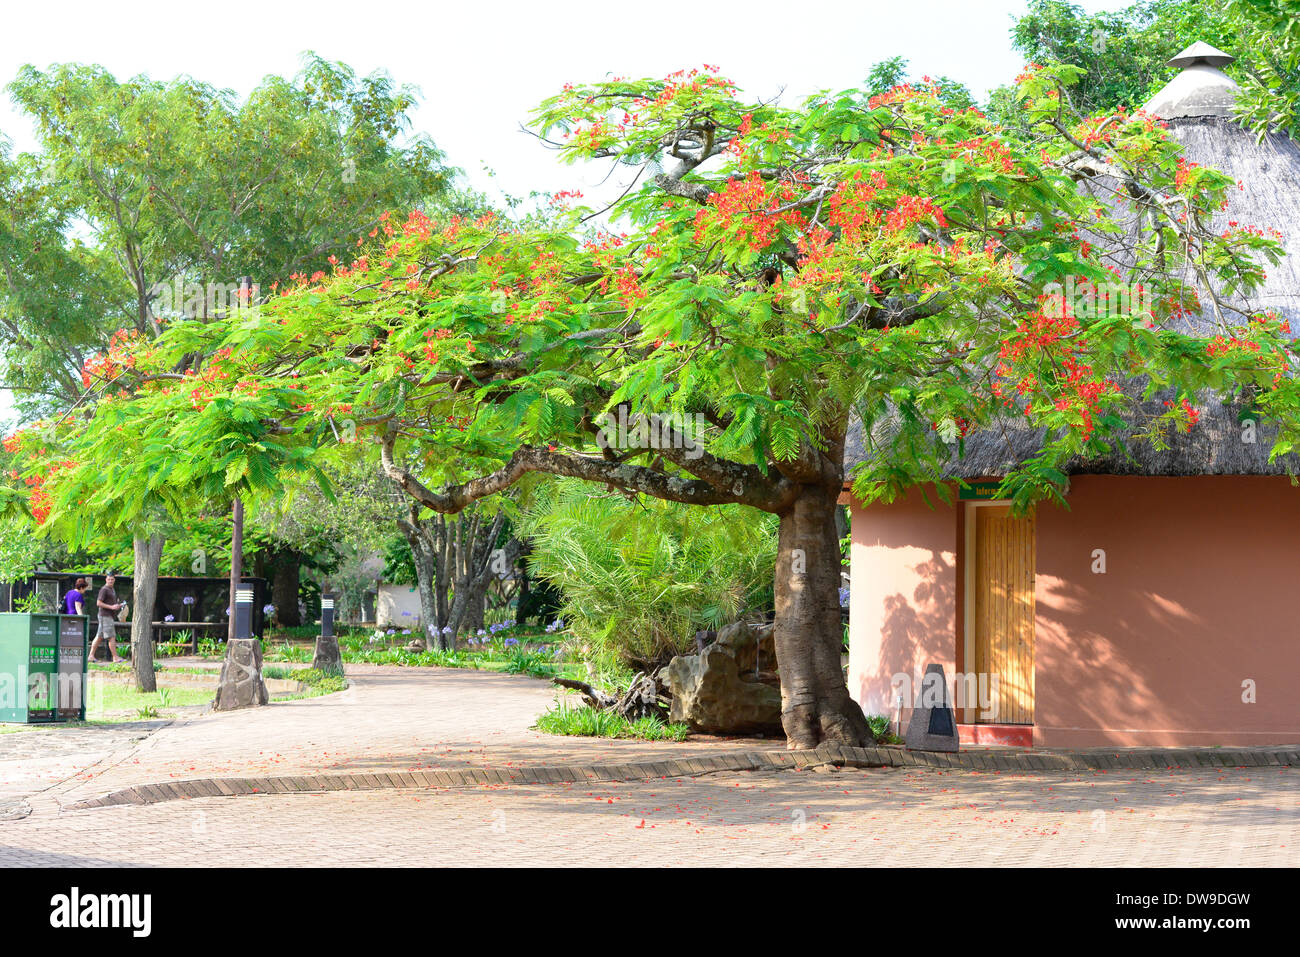 Red blossoms on green-leafed flamboyant tree with hut in Pretoriuskop camp, Kruger National Park, South Africa - Stock Image